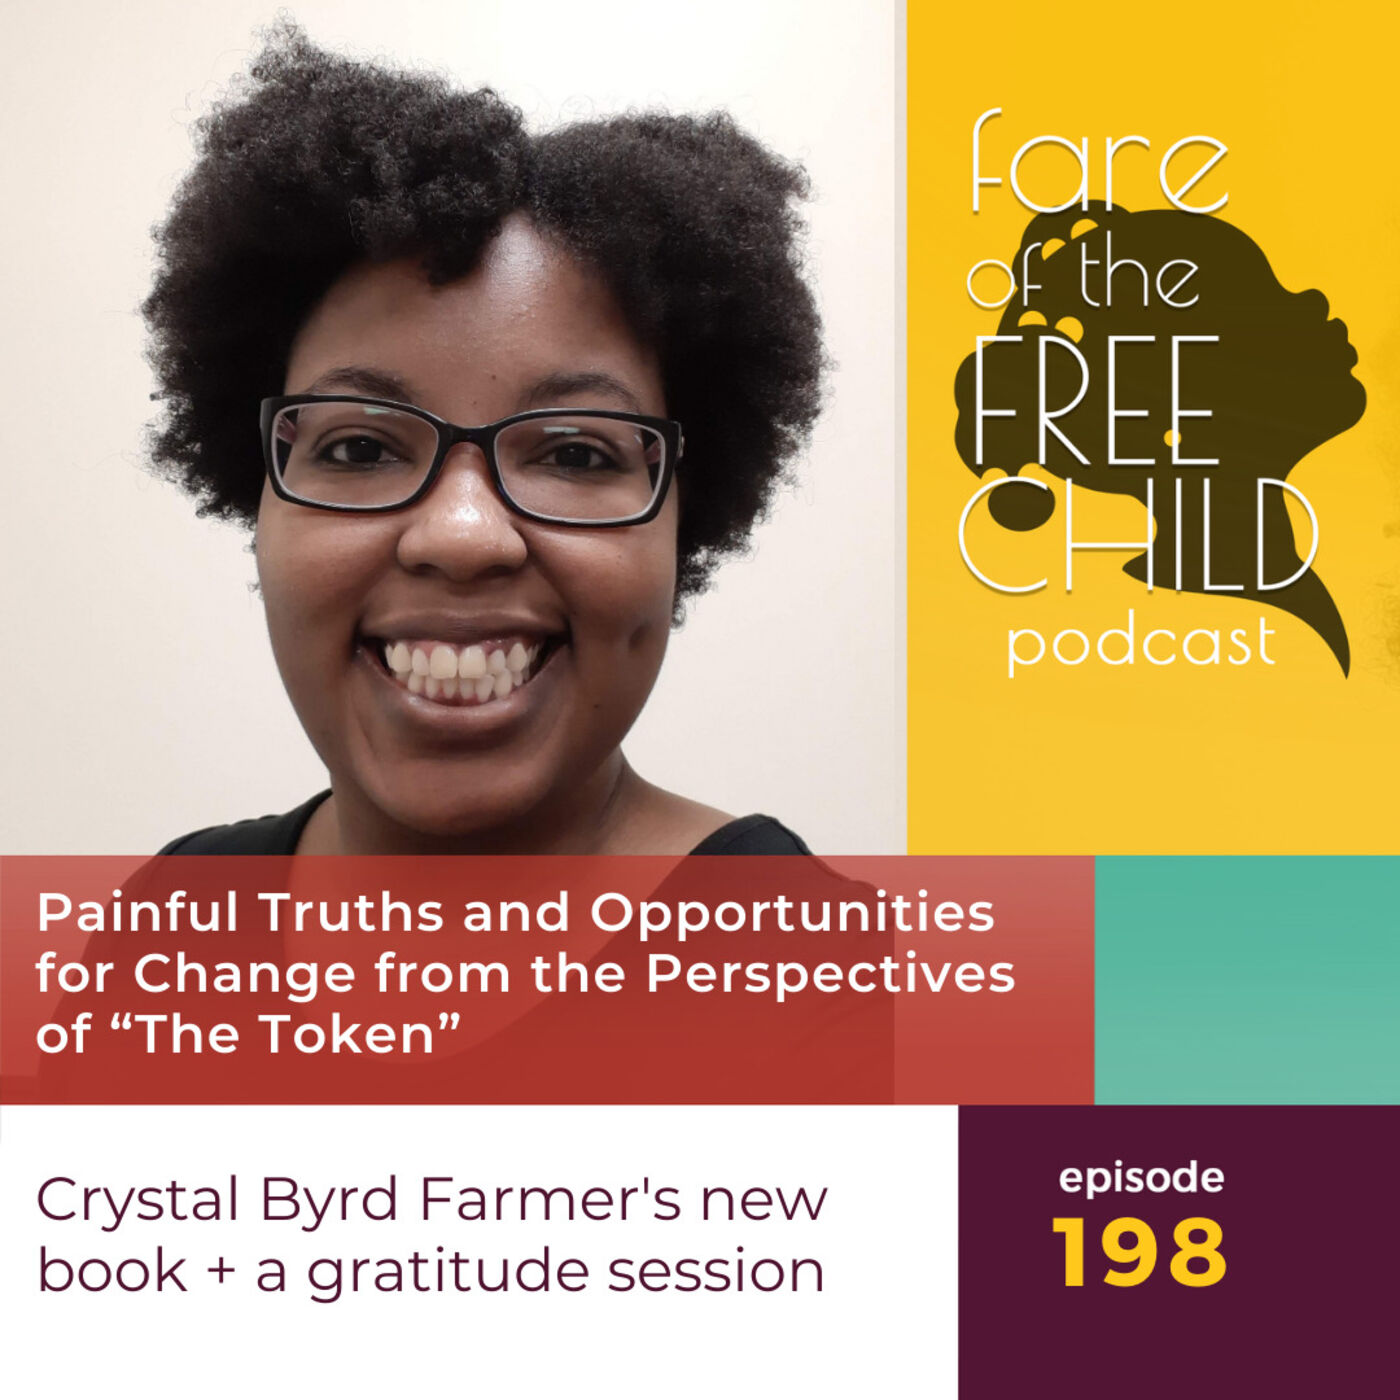 """Ep 198: Painful Truths and Opportunities for Change from the Perspectives of """"The Token"""" Crystal Byrd Farmer's new book + a gratitude session"""